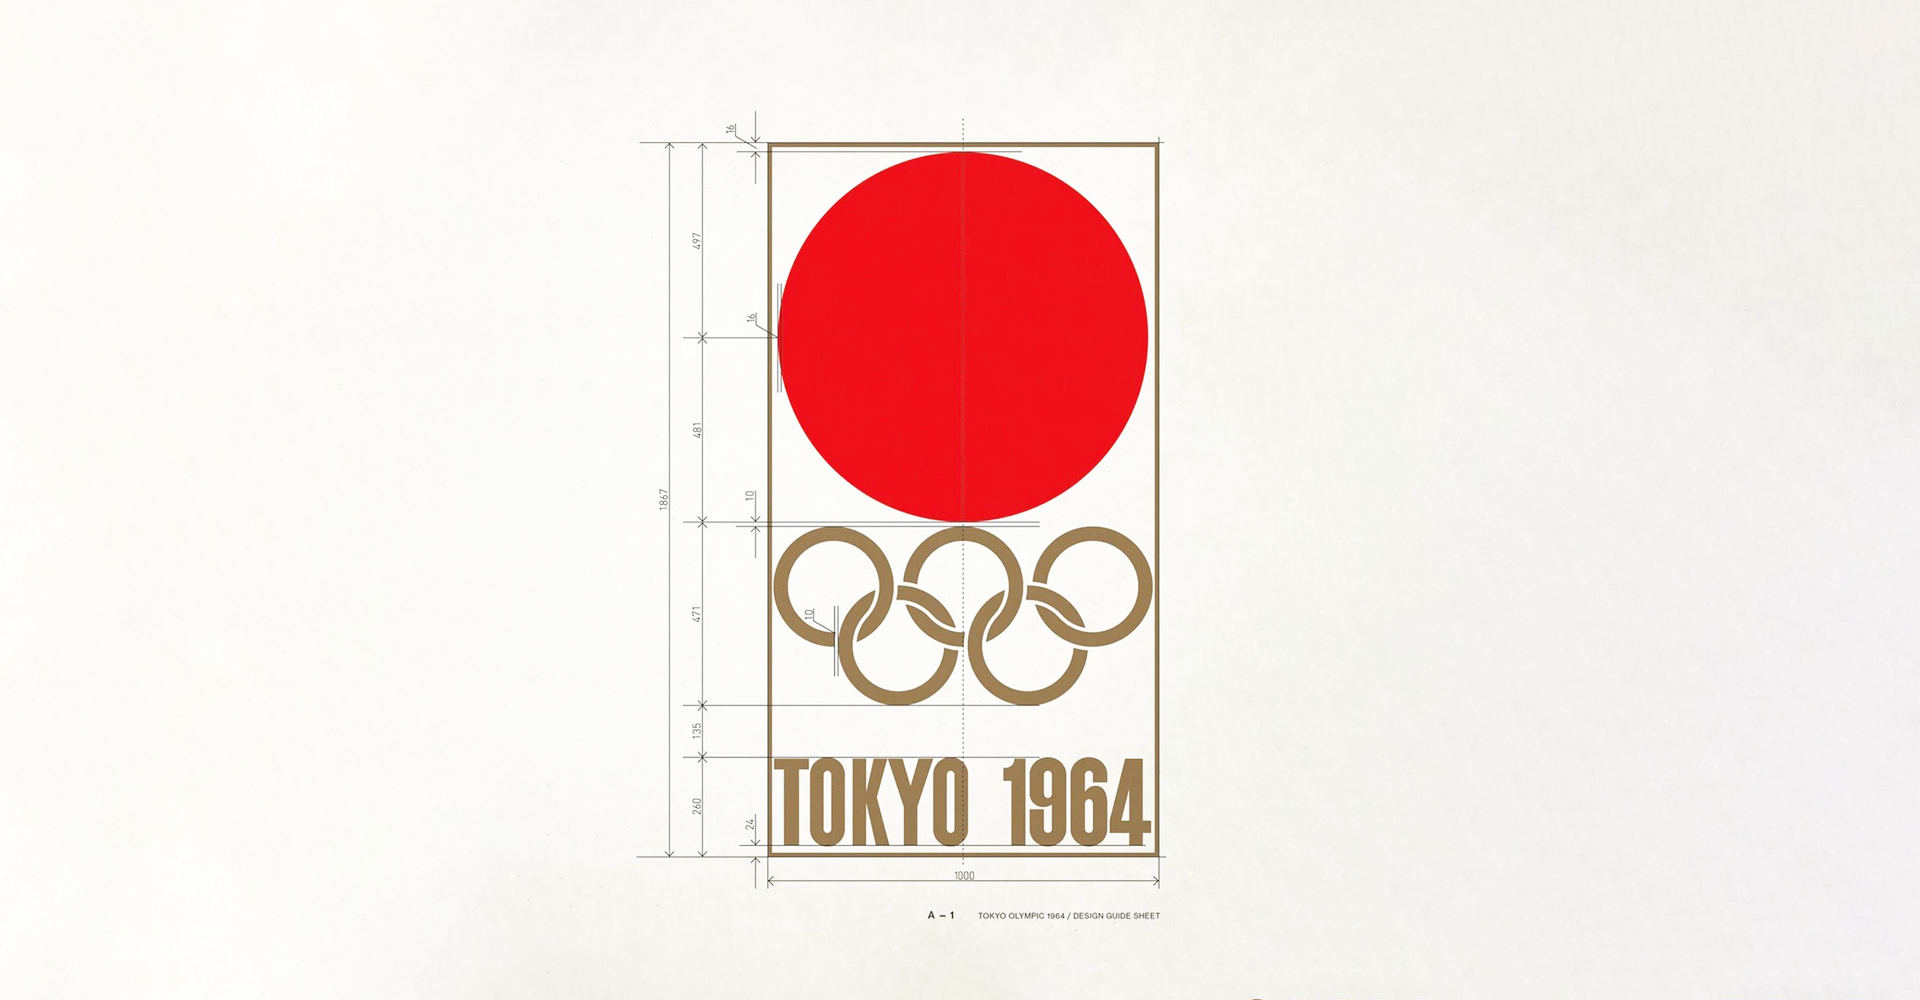 Design sketch for Toyko 1964 logo, red circle with Olympic rings below and 1964 in a bold, condensed font